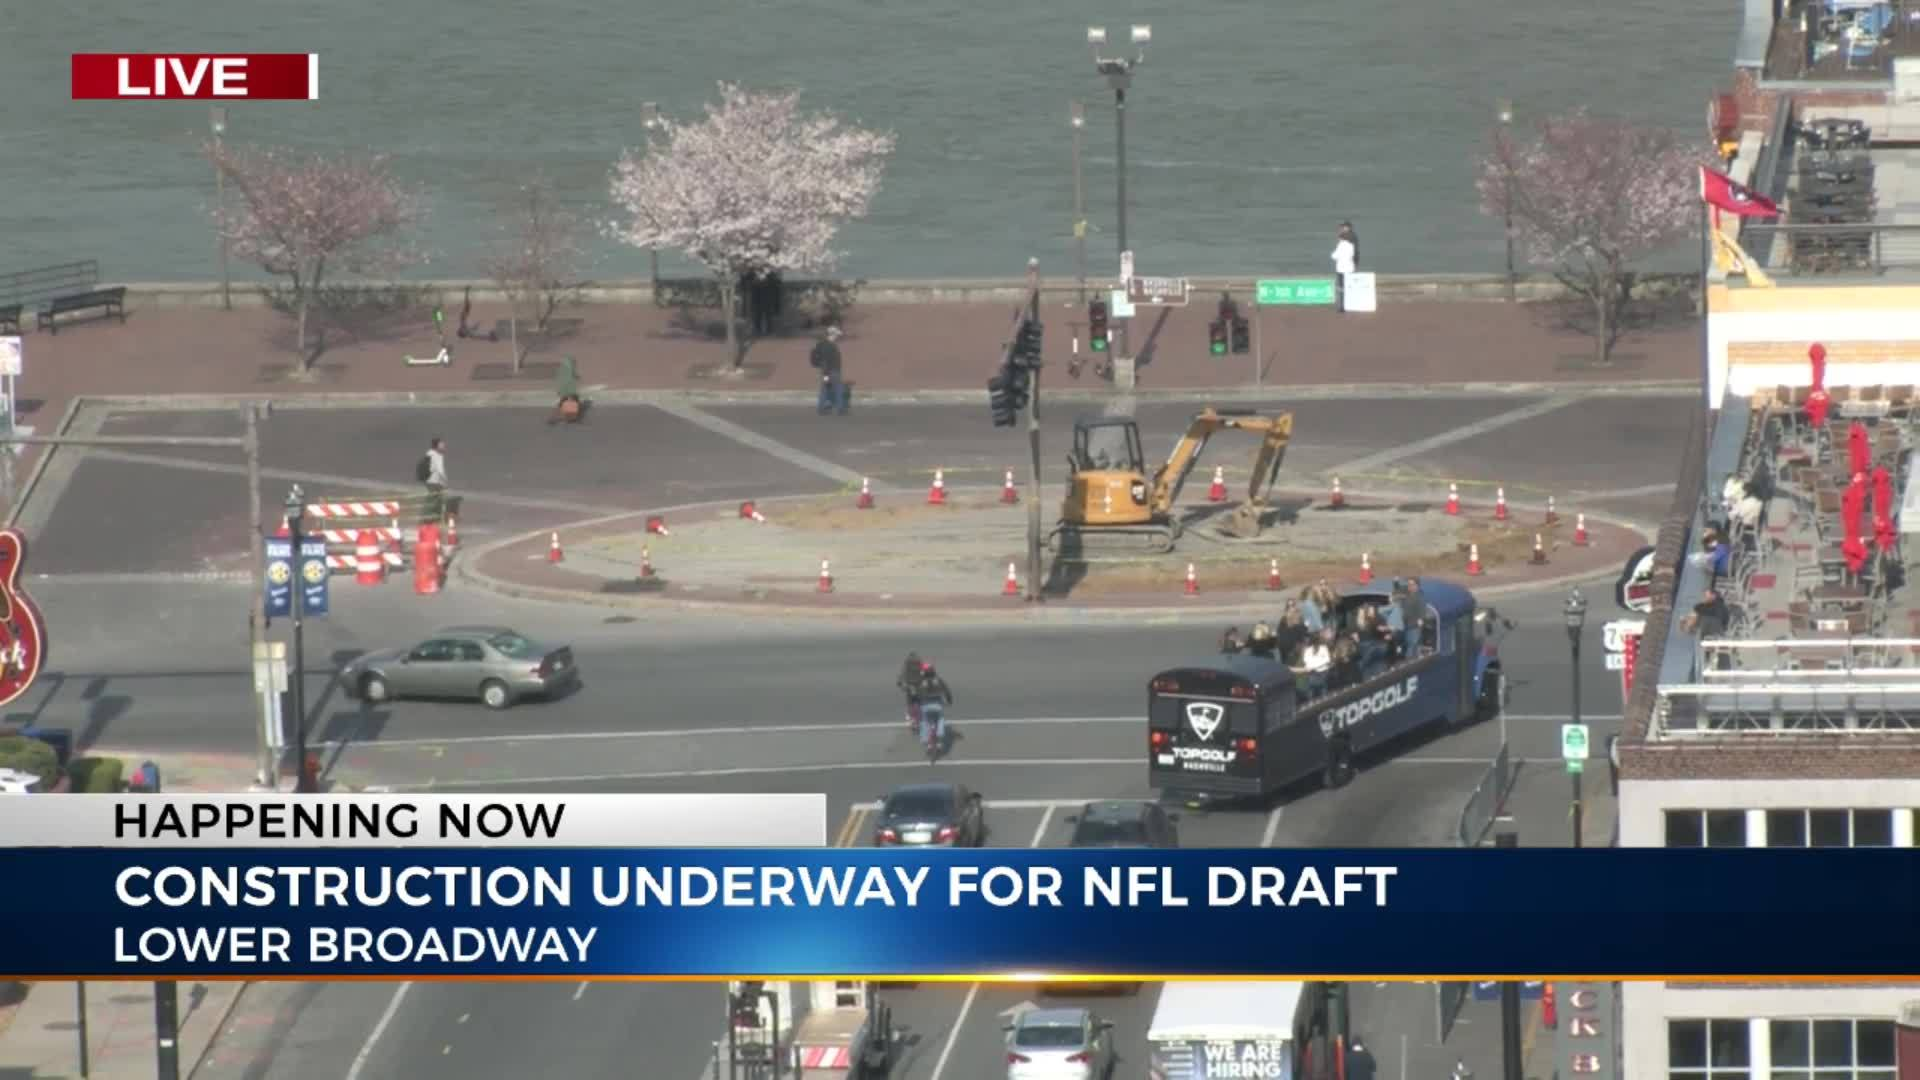 Road_closures_for_NFL_Draft_4_20190321212406